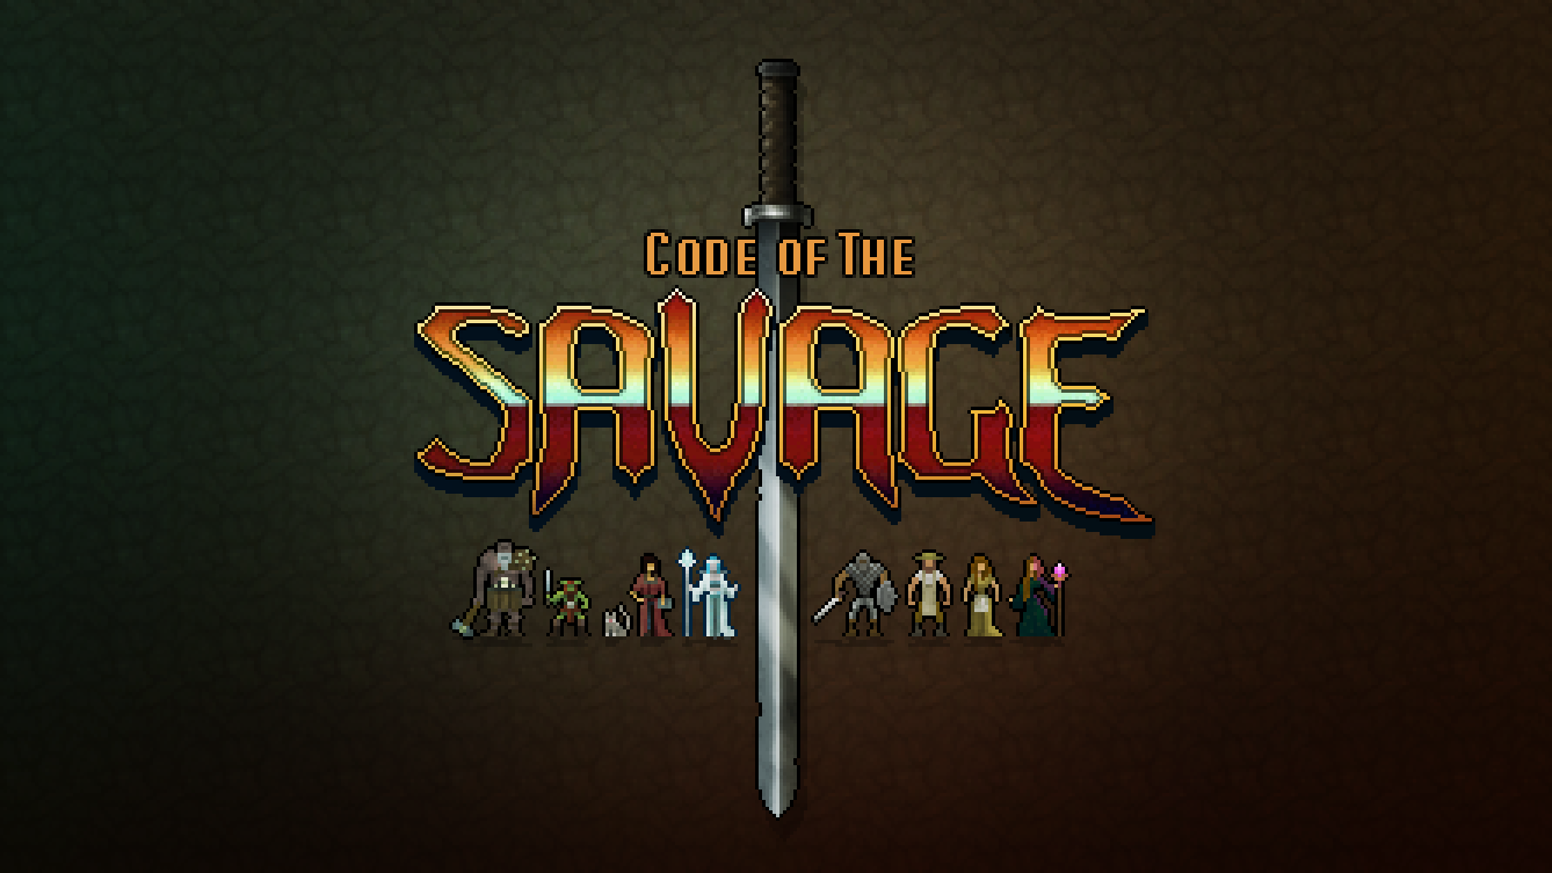 I'm making a classic style western RPG that's inspired by some of the great role playing games of the golden era of gaming (80's-90's).